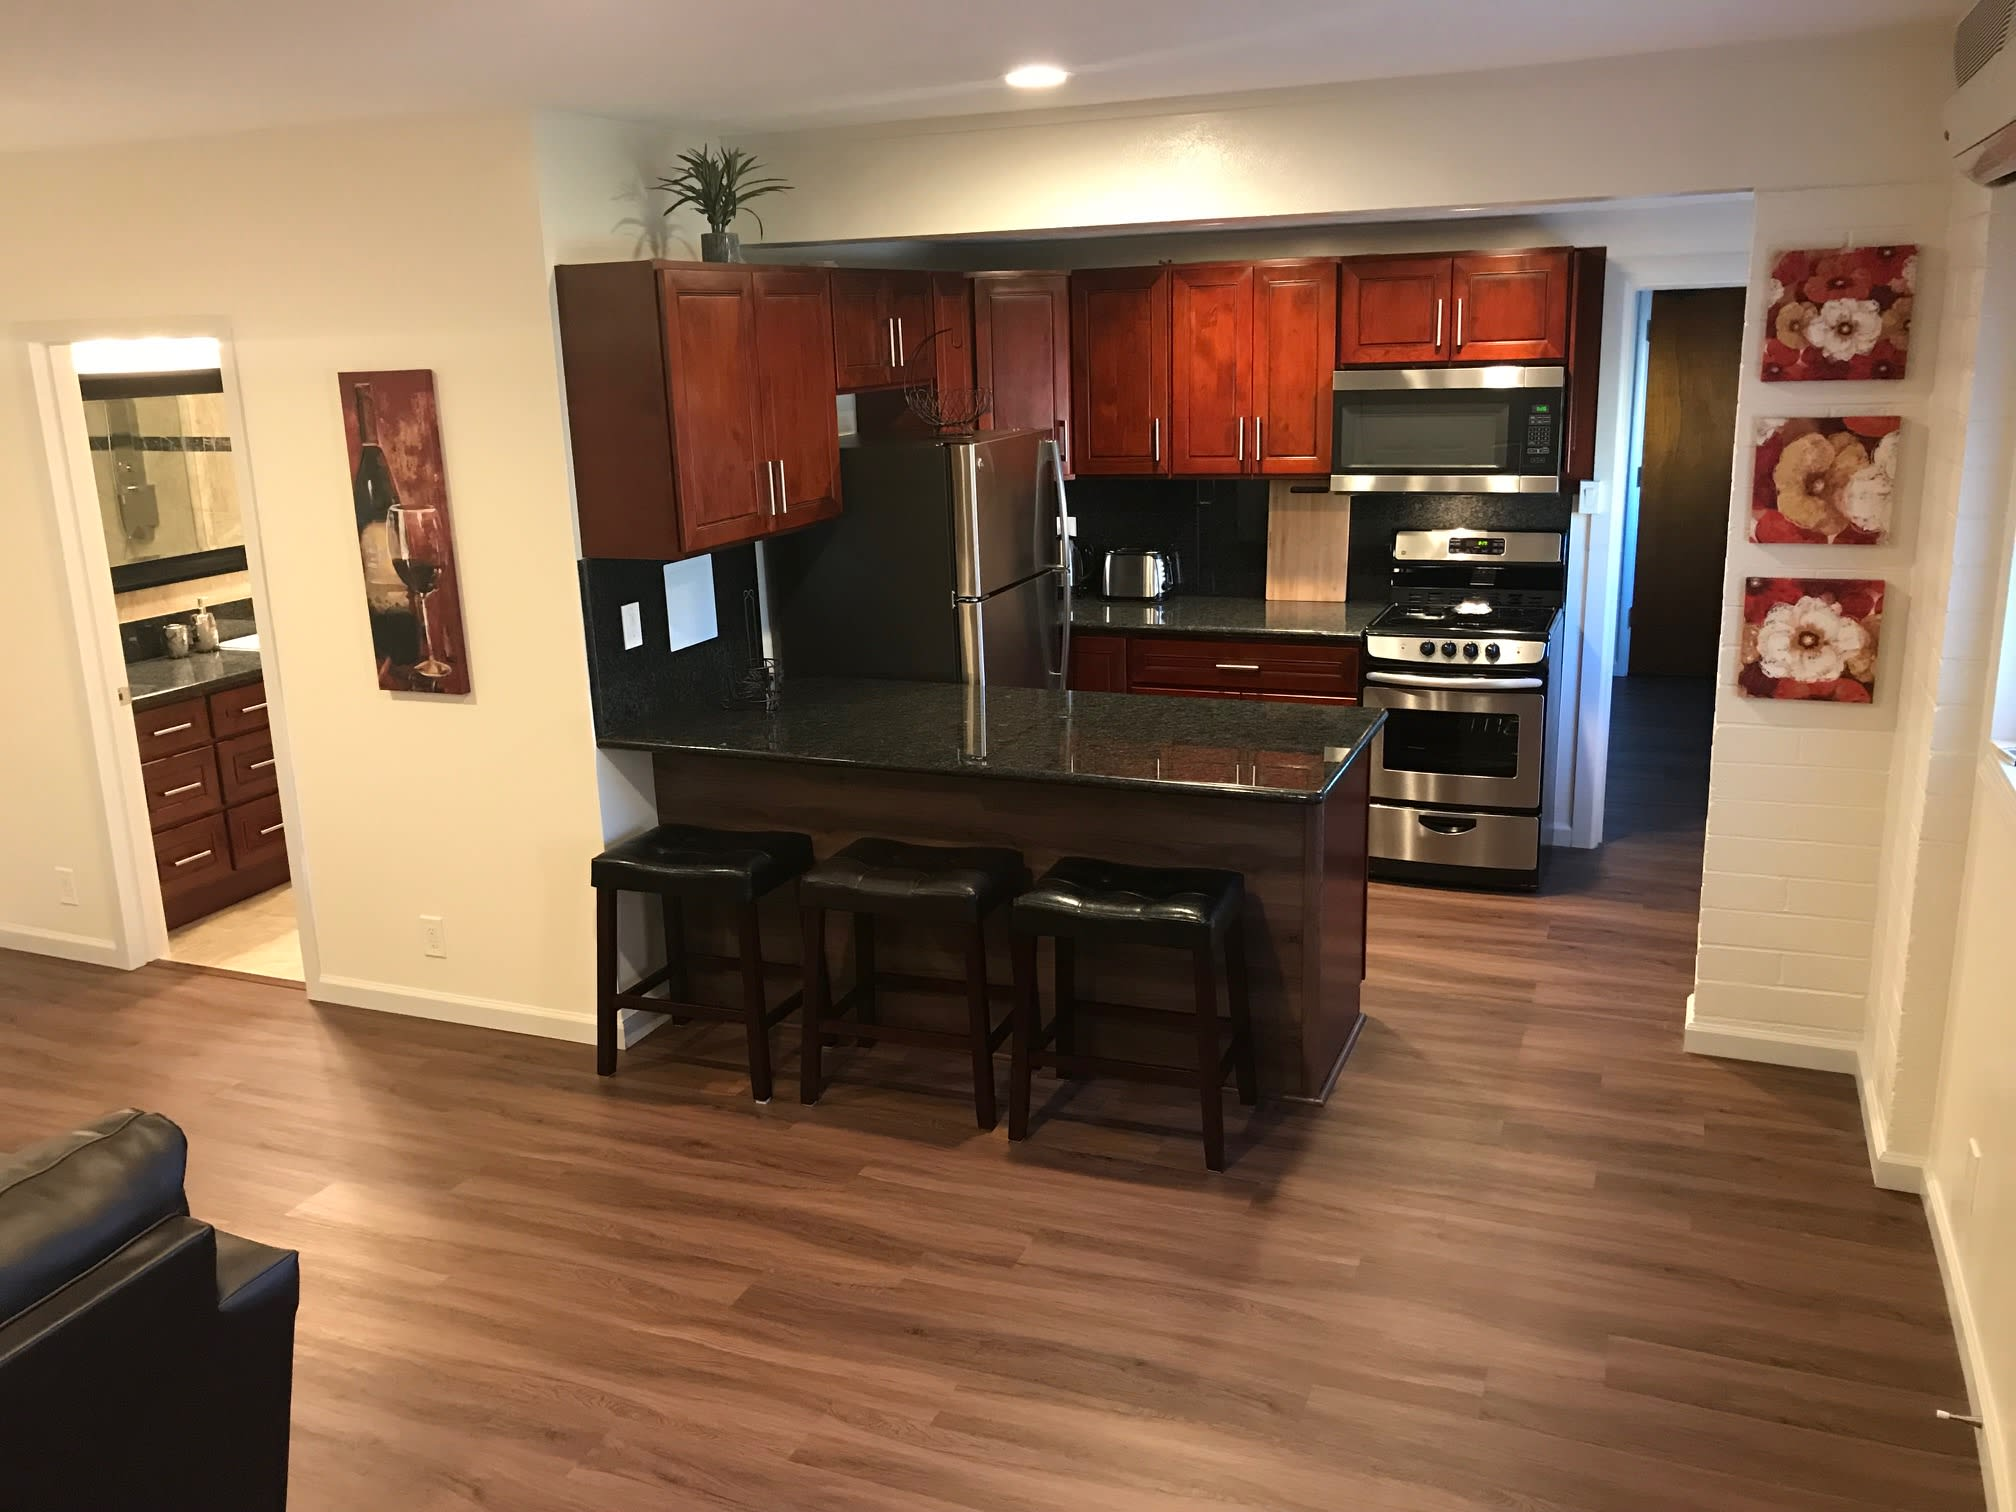 Craigslist Oahu Furniture By Owner - Hawaii S Buy And Sell ...